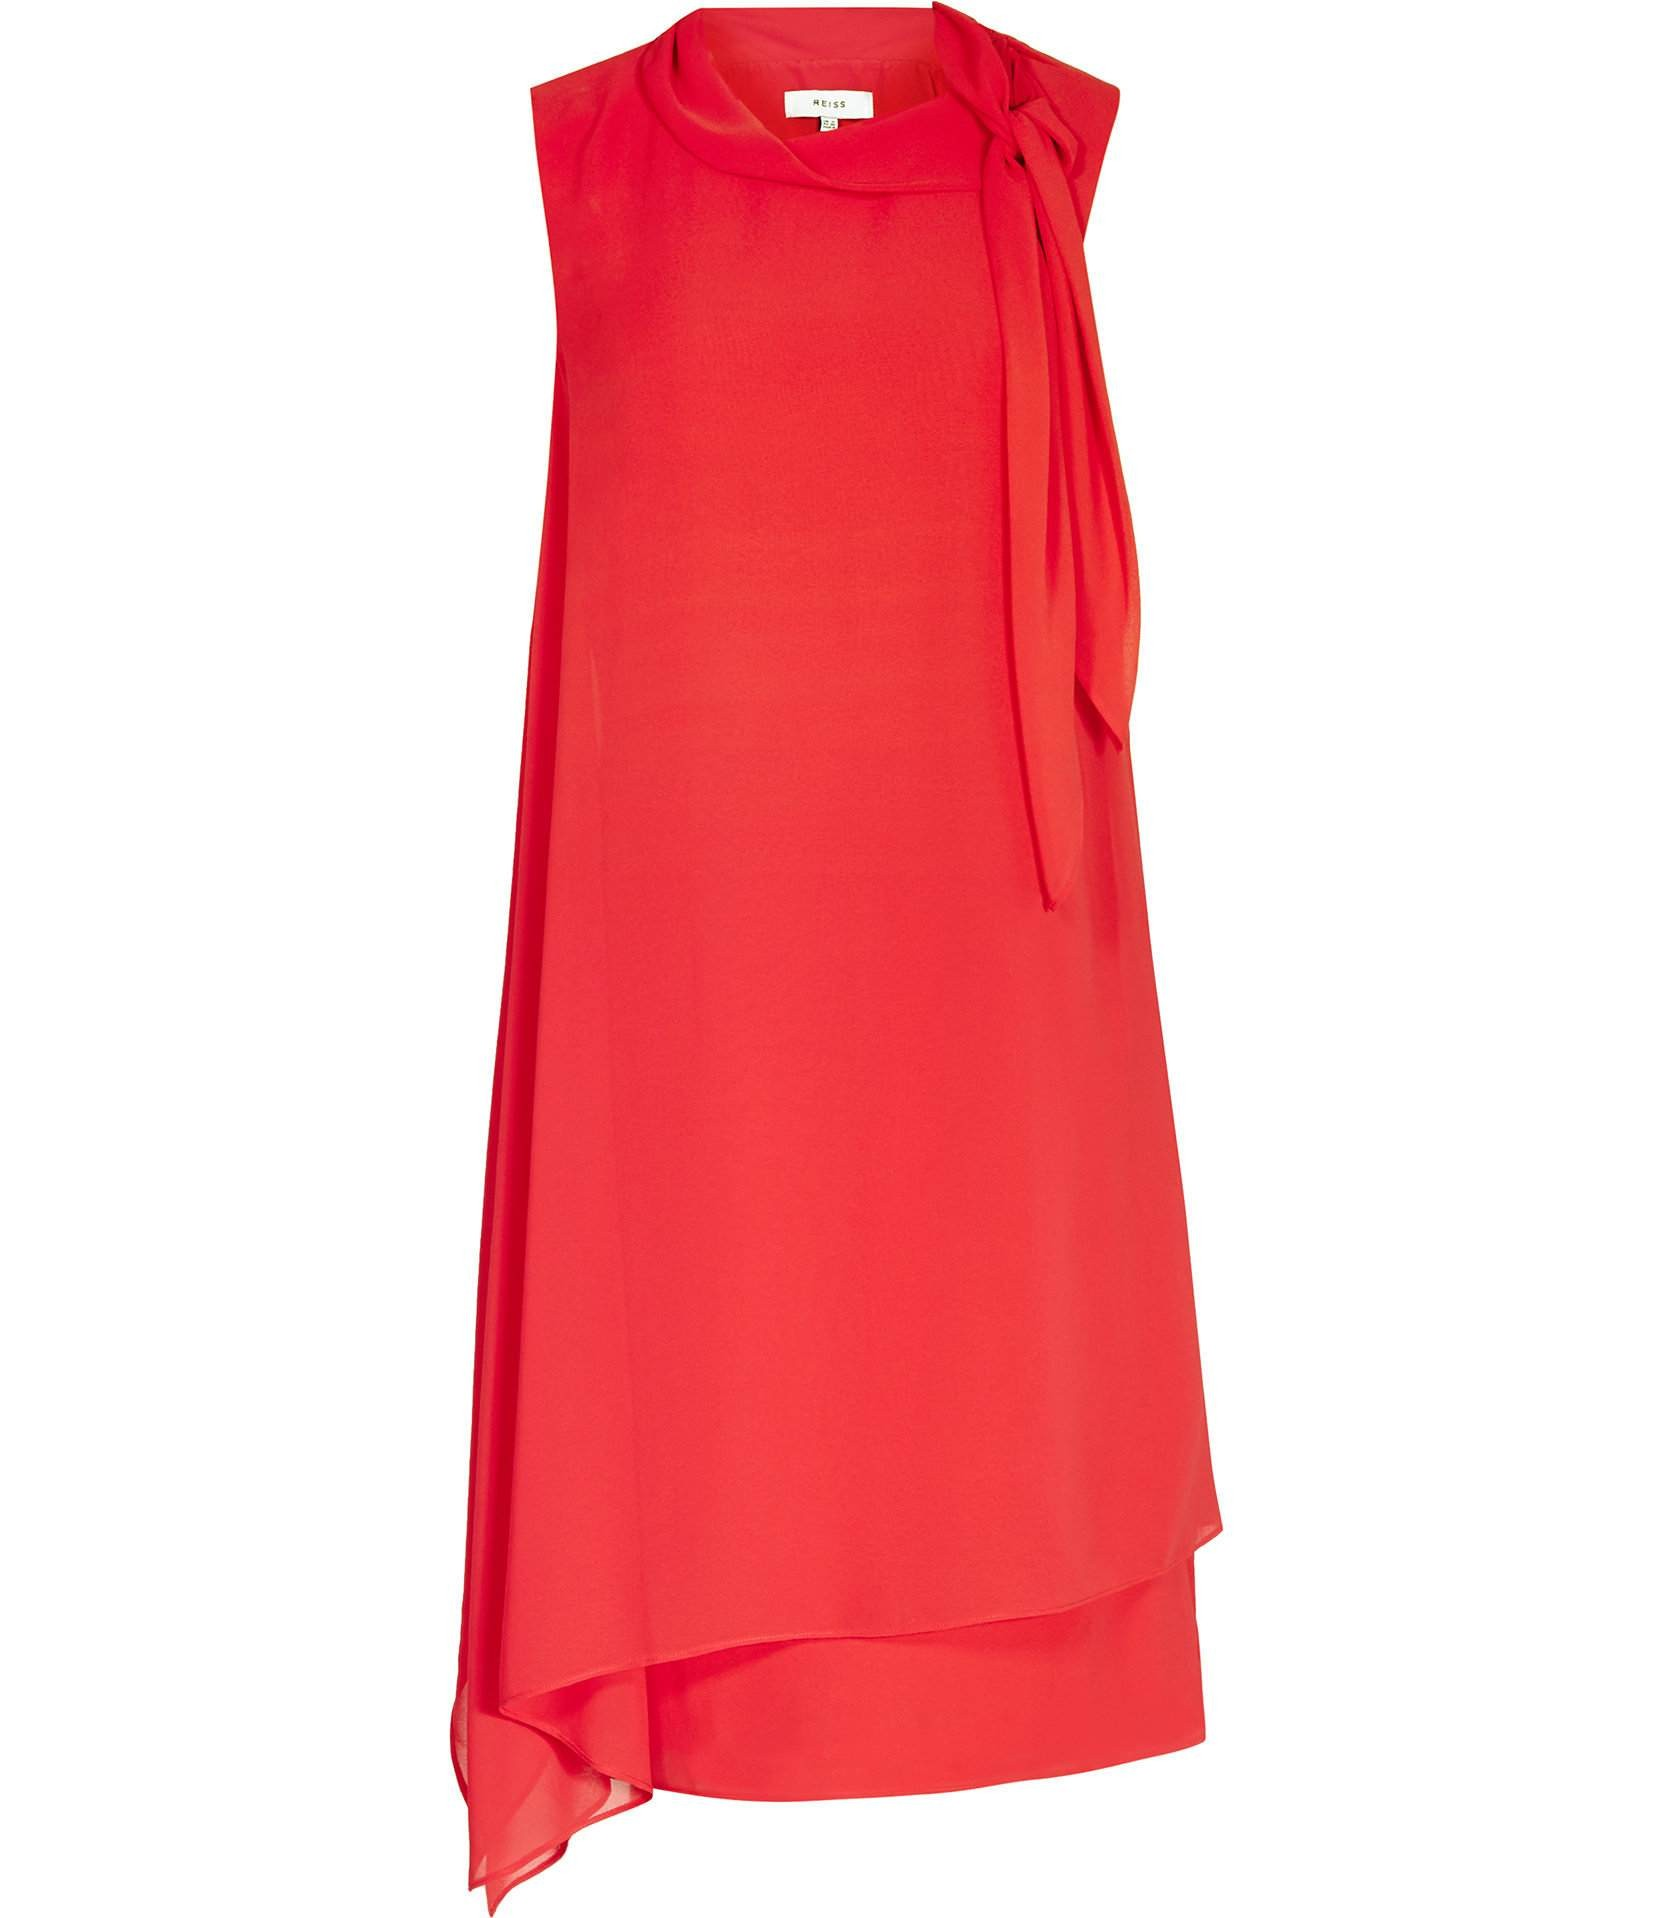 ebc559566 ... Reiss Aries Cherry Red Tie-Neck Dress 29727265,Reiss TIE-NECK DRESSES  ...